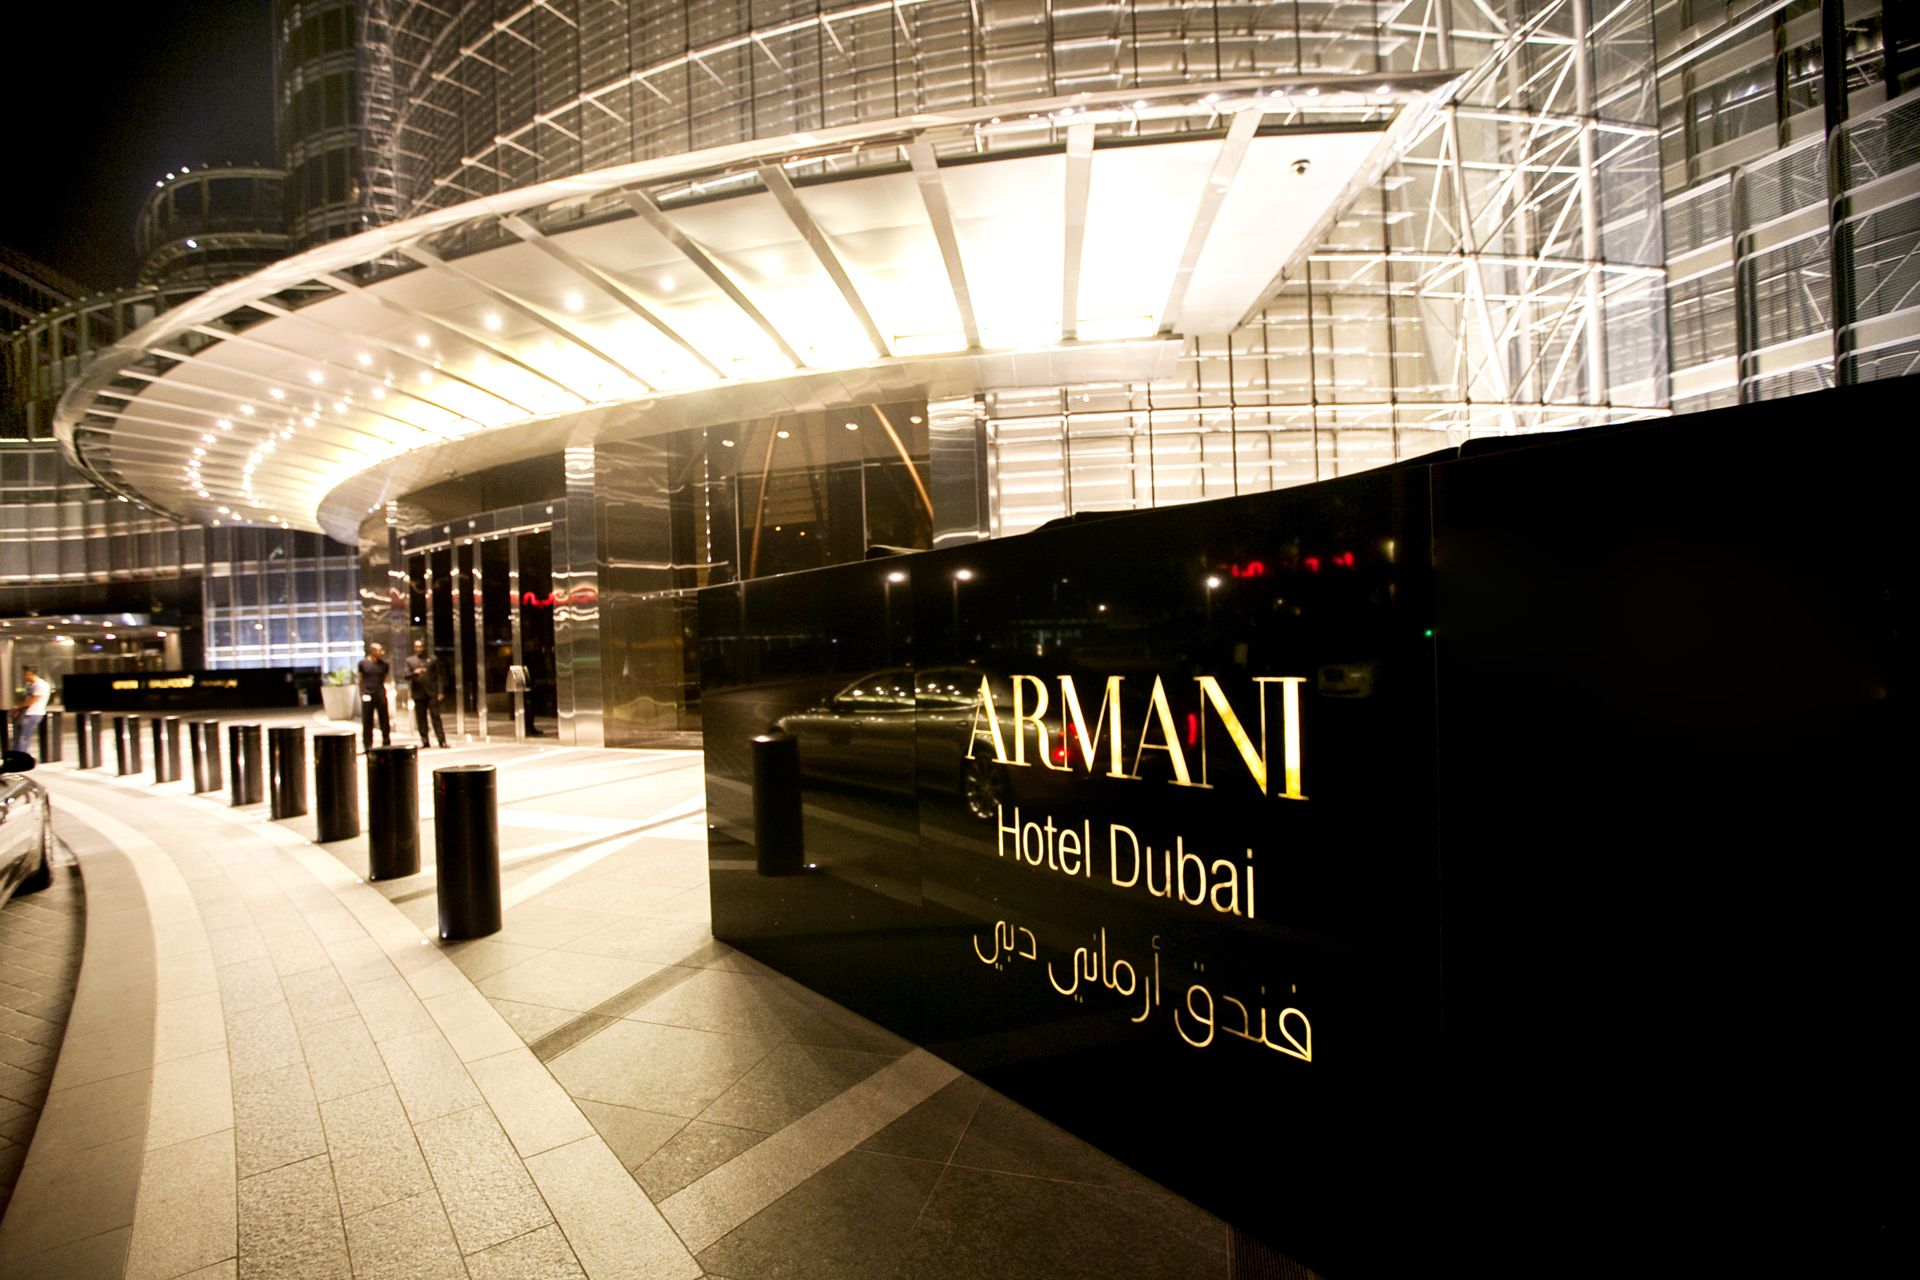 Armani Hotel Dubai Hotels & Resorts